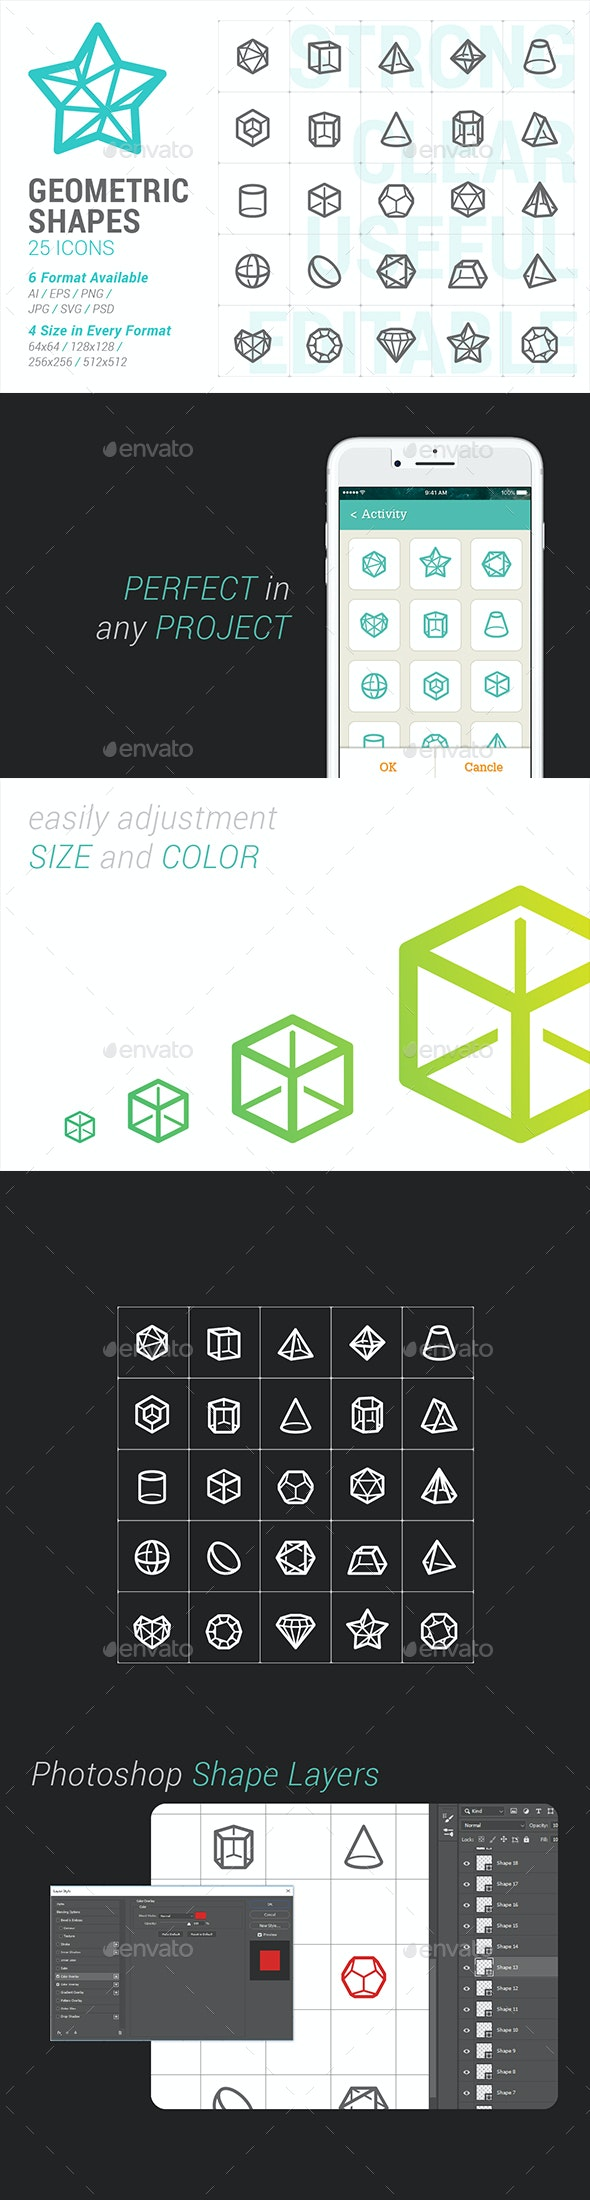 Geometric Shapes Mini Icon - Abstract Icons